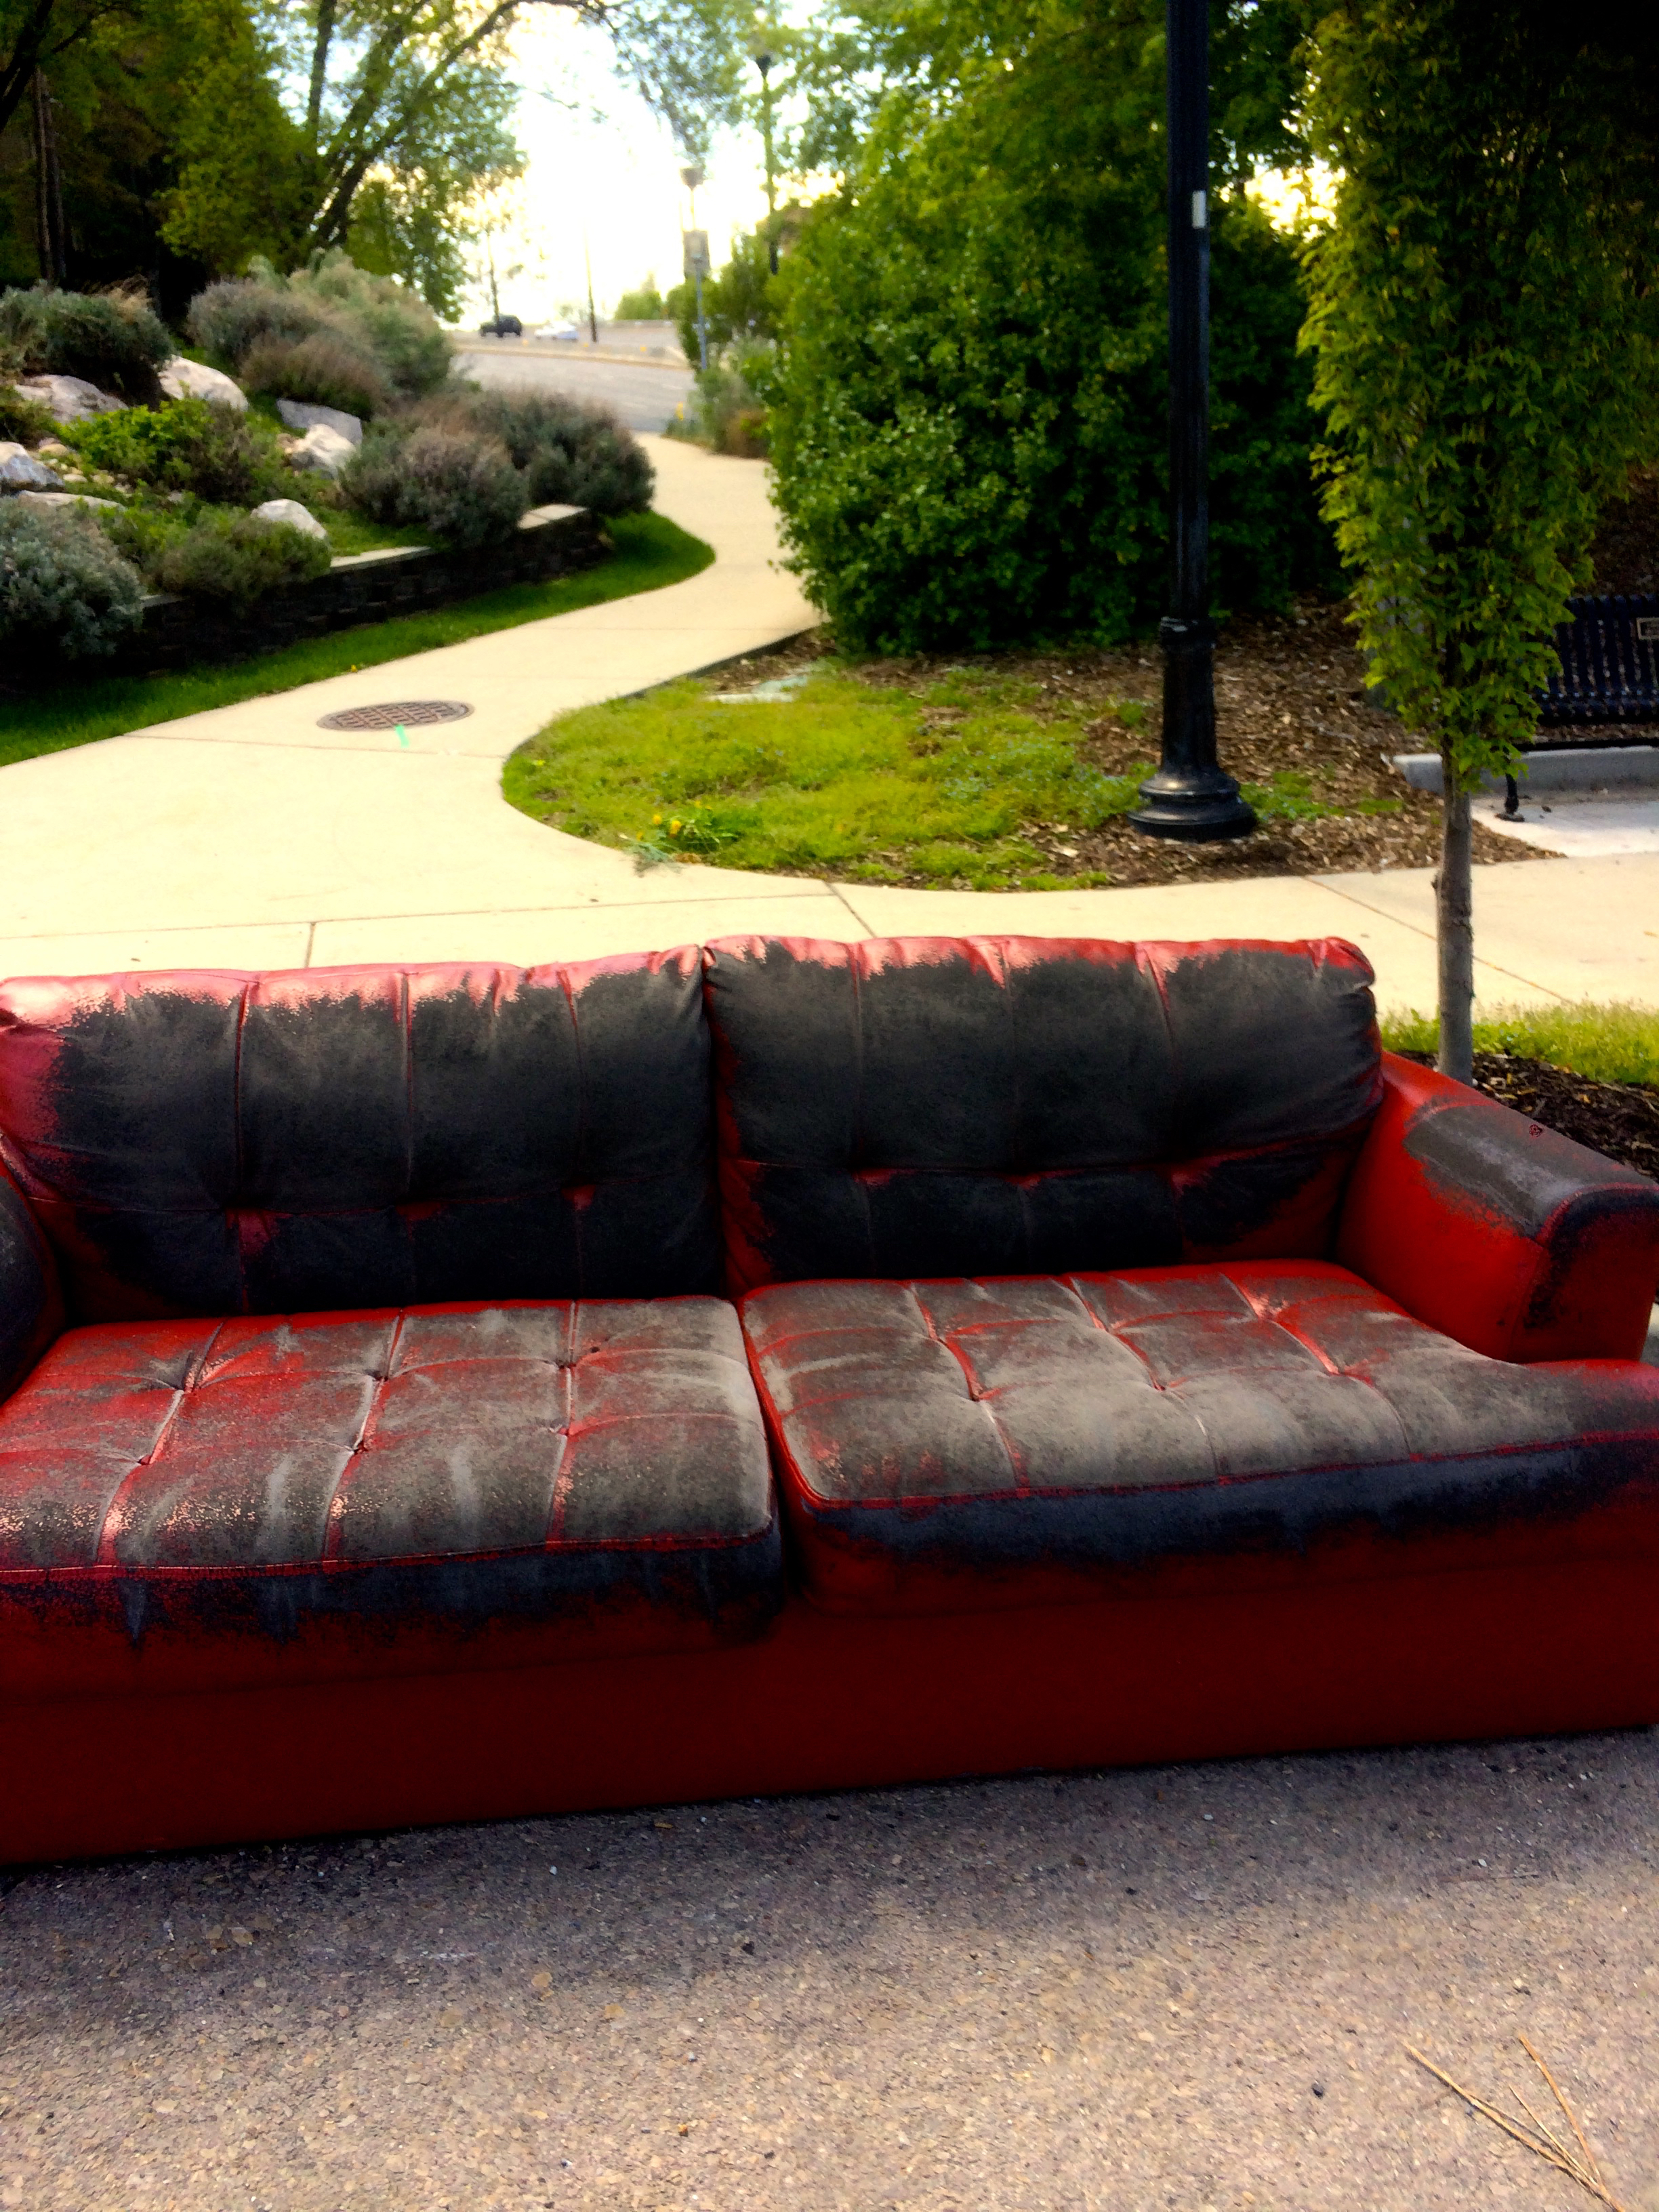 Red_Leatherette_Sofa_at_the_Curb.jpg